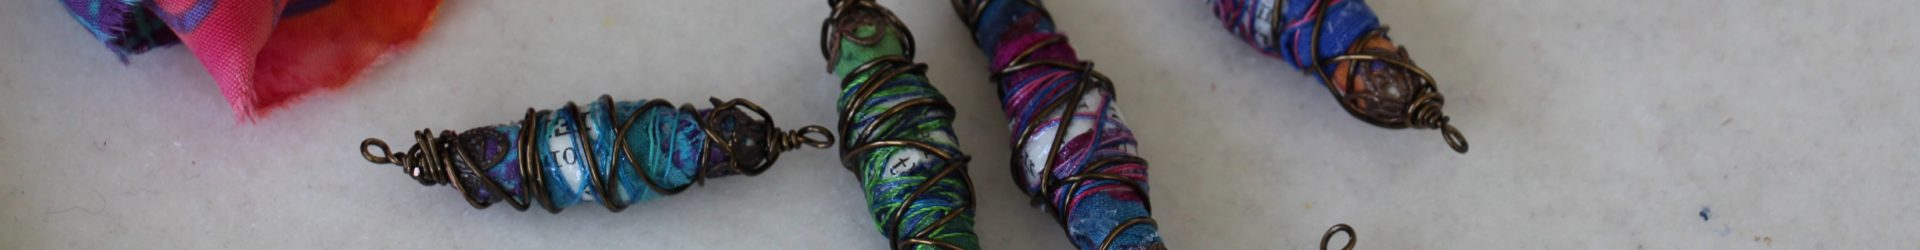 August bead mat update: Tales from the recycling bin!